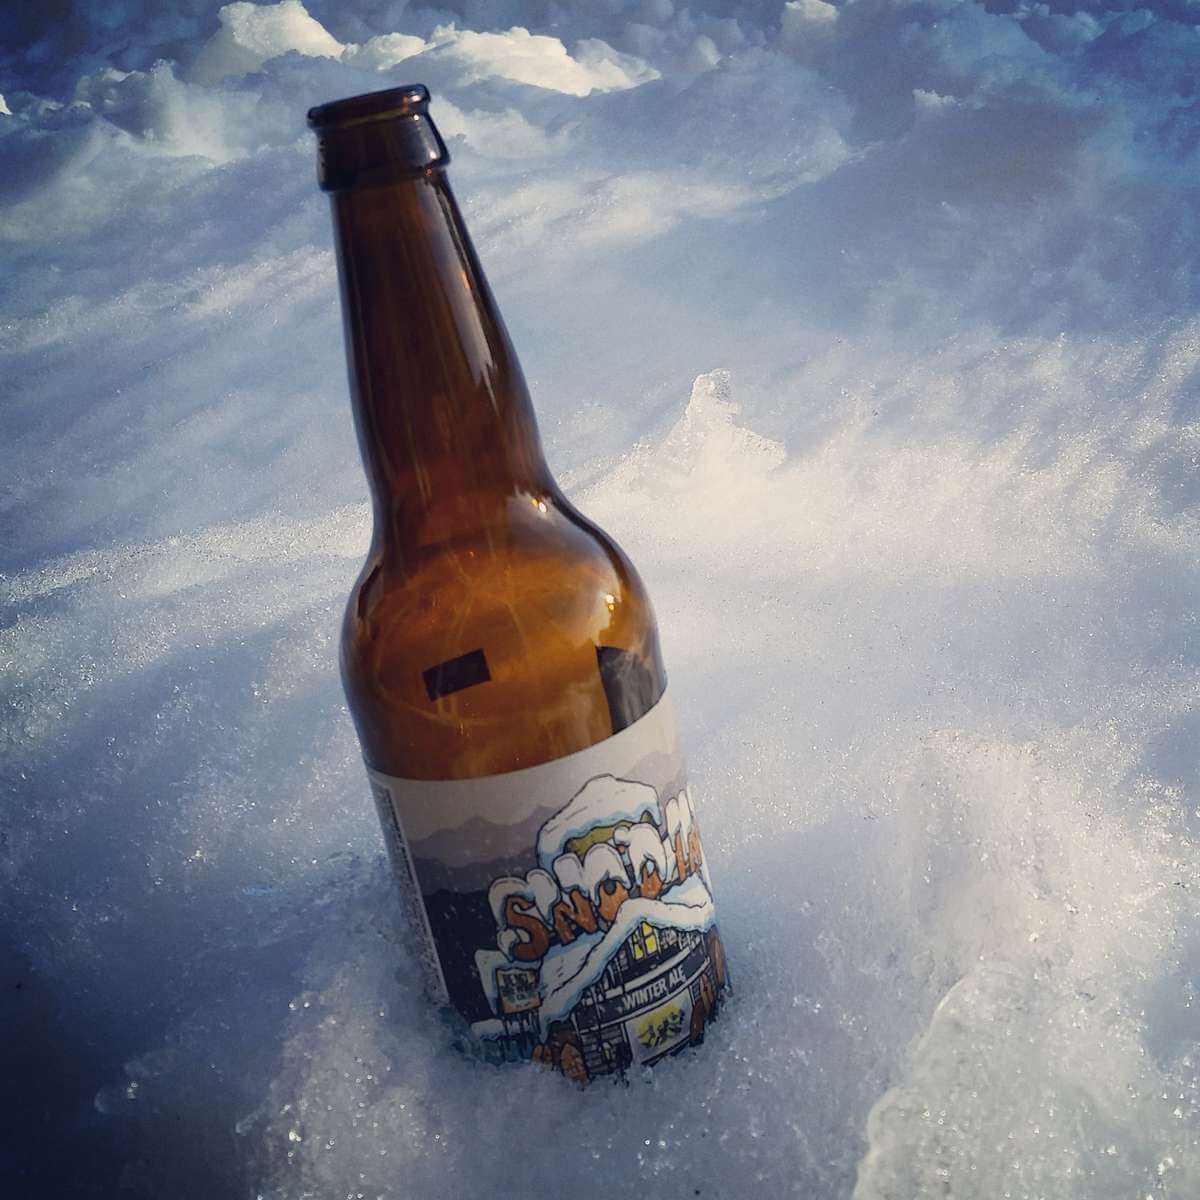 Snowed In with Bend Brewing Sno'd In Winter Ale